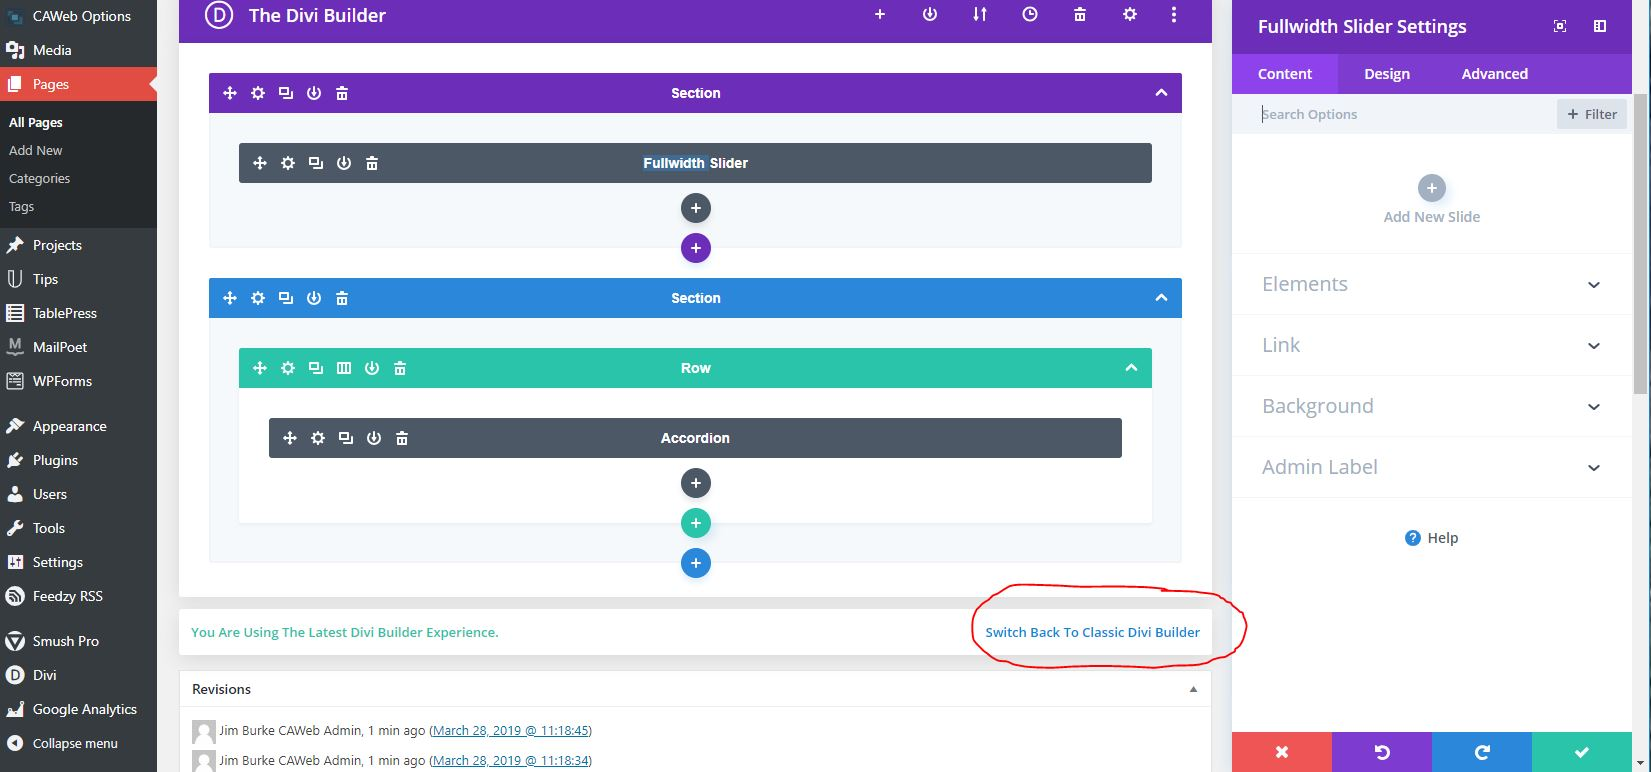 Switch Back to Classic Divi Builder is circled